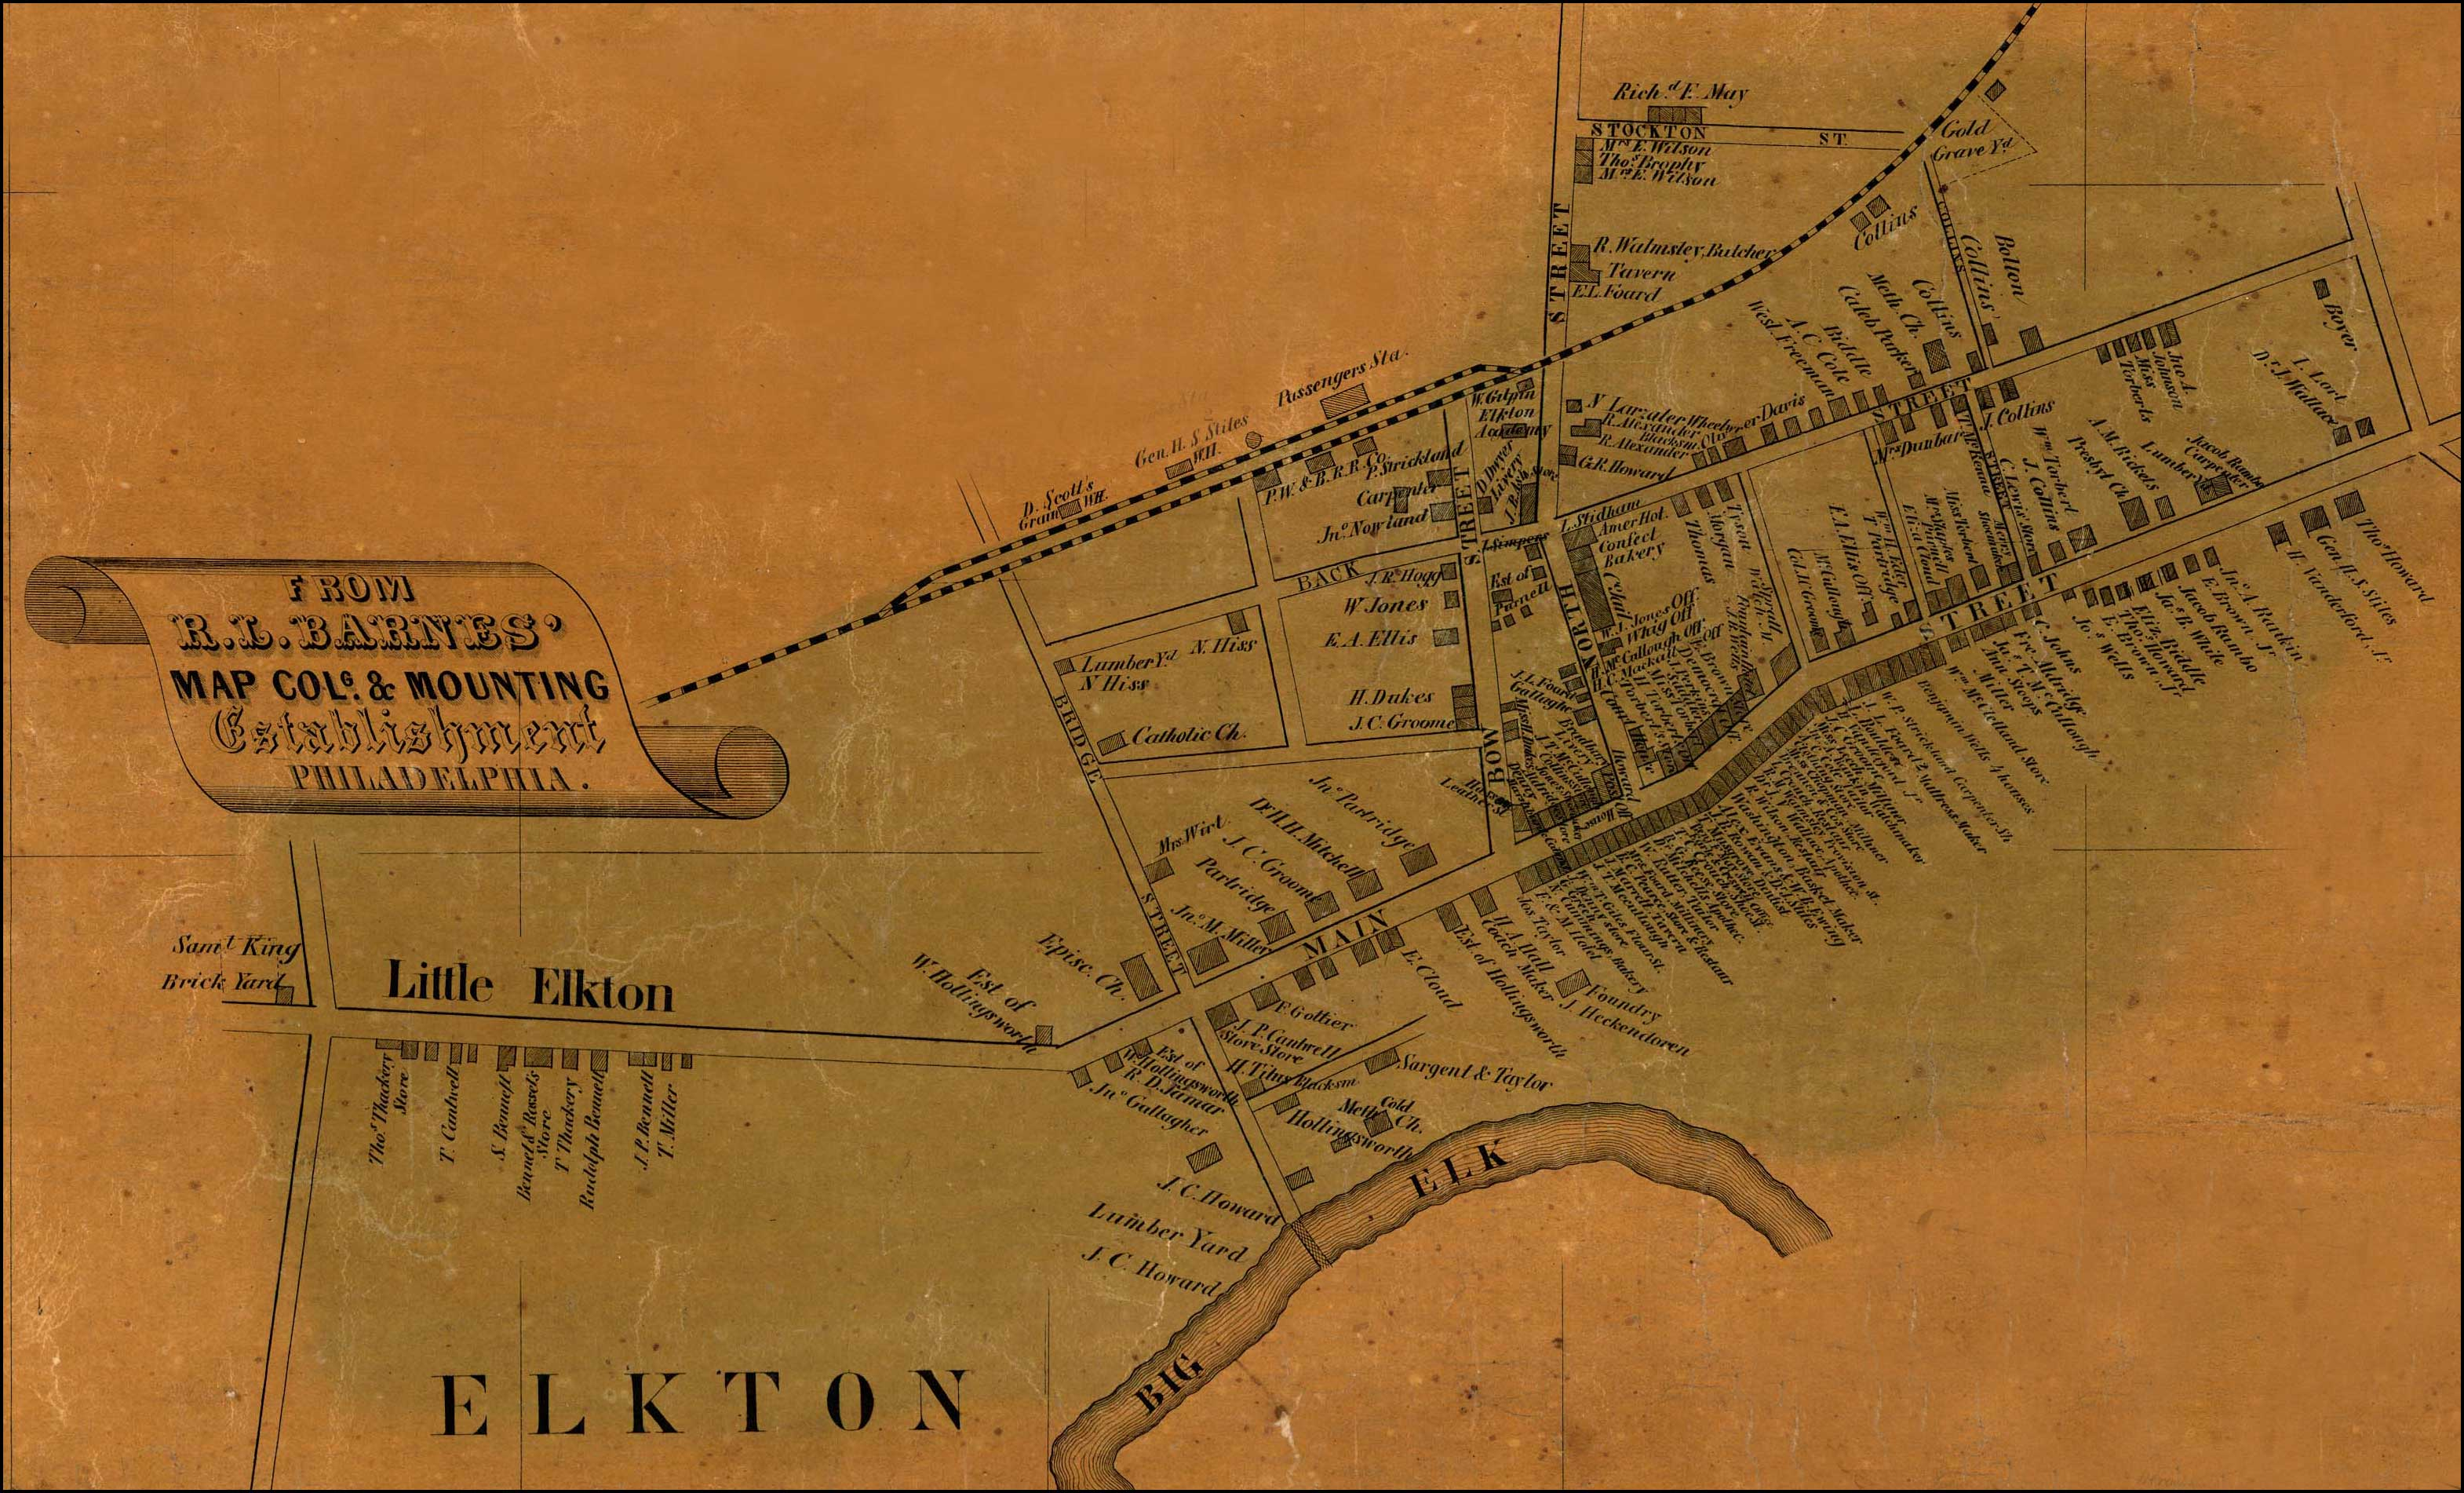 Detail of Elkton from Simon J. Martenet, Map of Cecil County, 1858, Library of Congress, MSA SC 1213-1-462